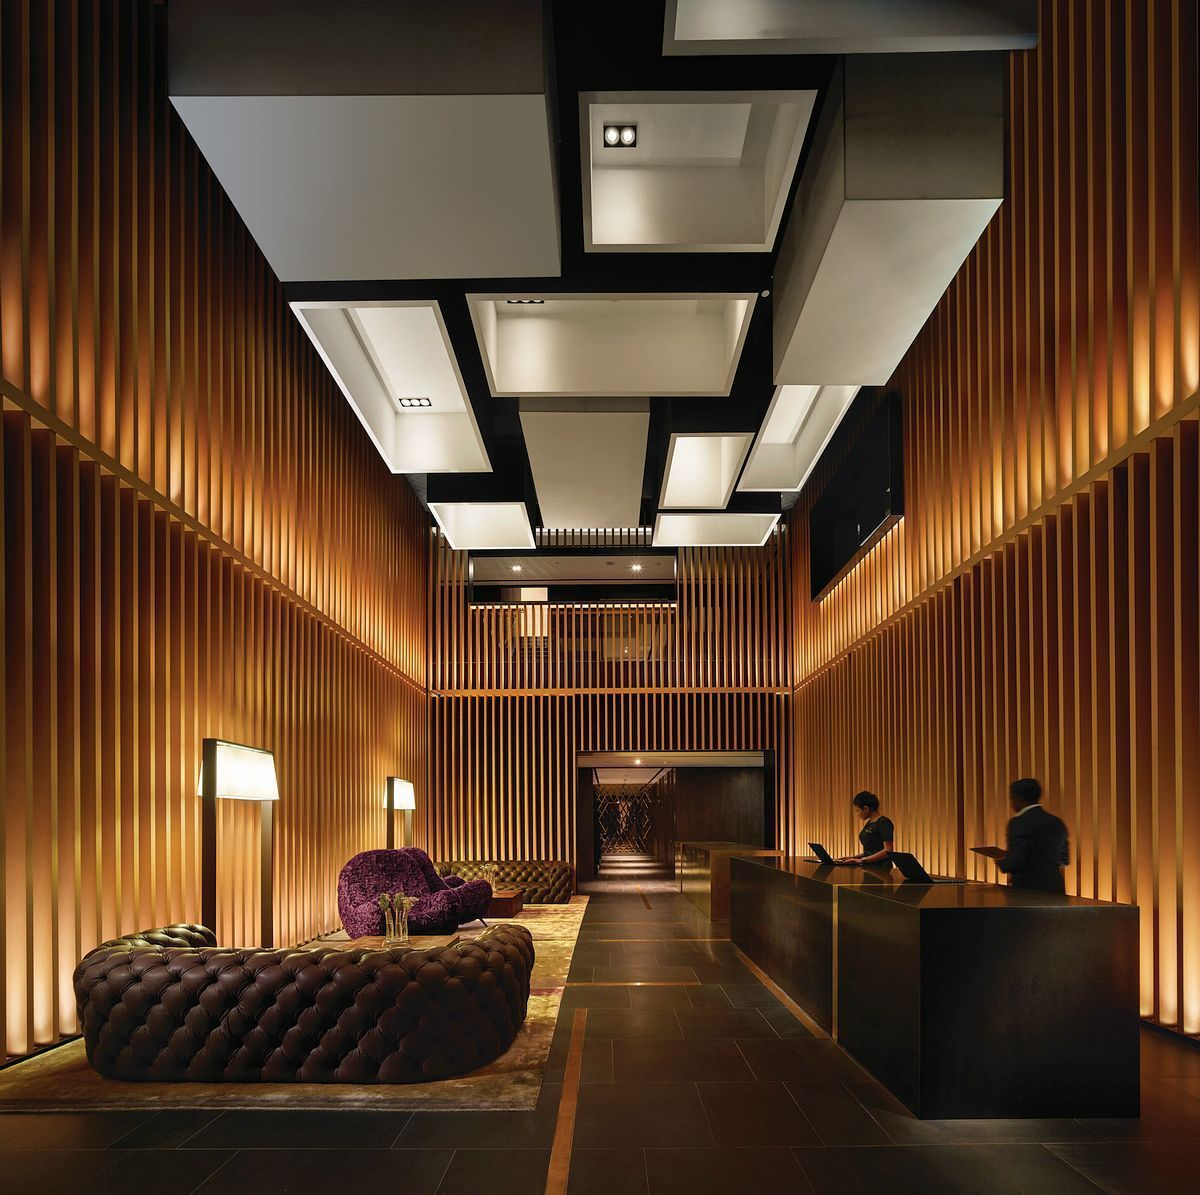 G hotel kelawai malaysia with its exquisite luxury